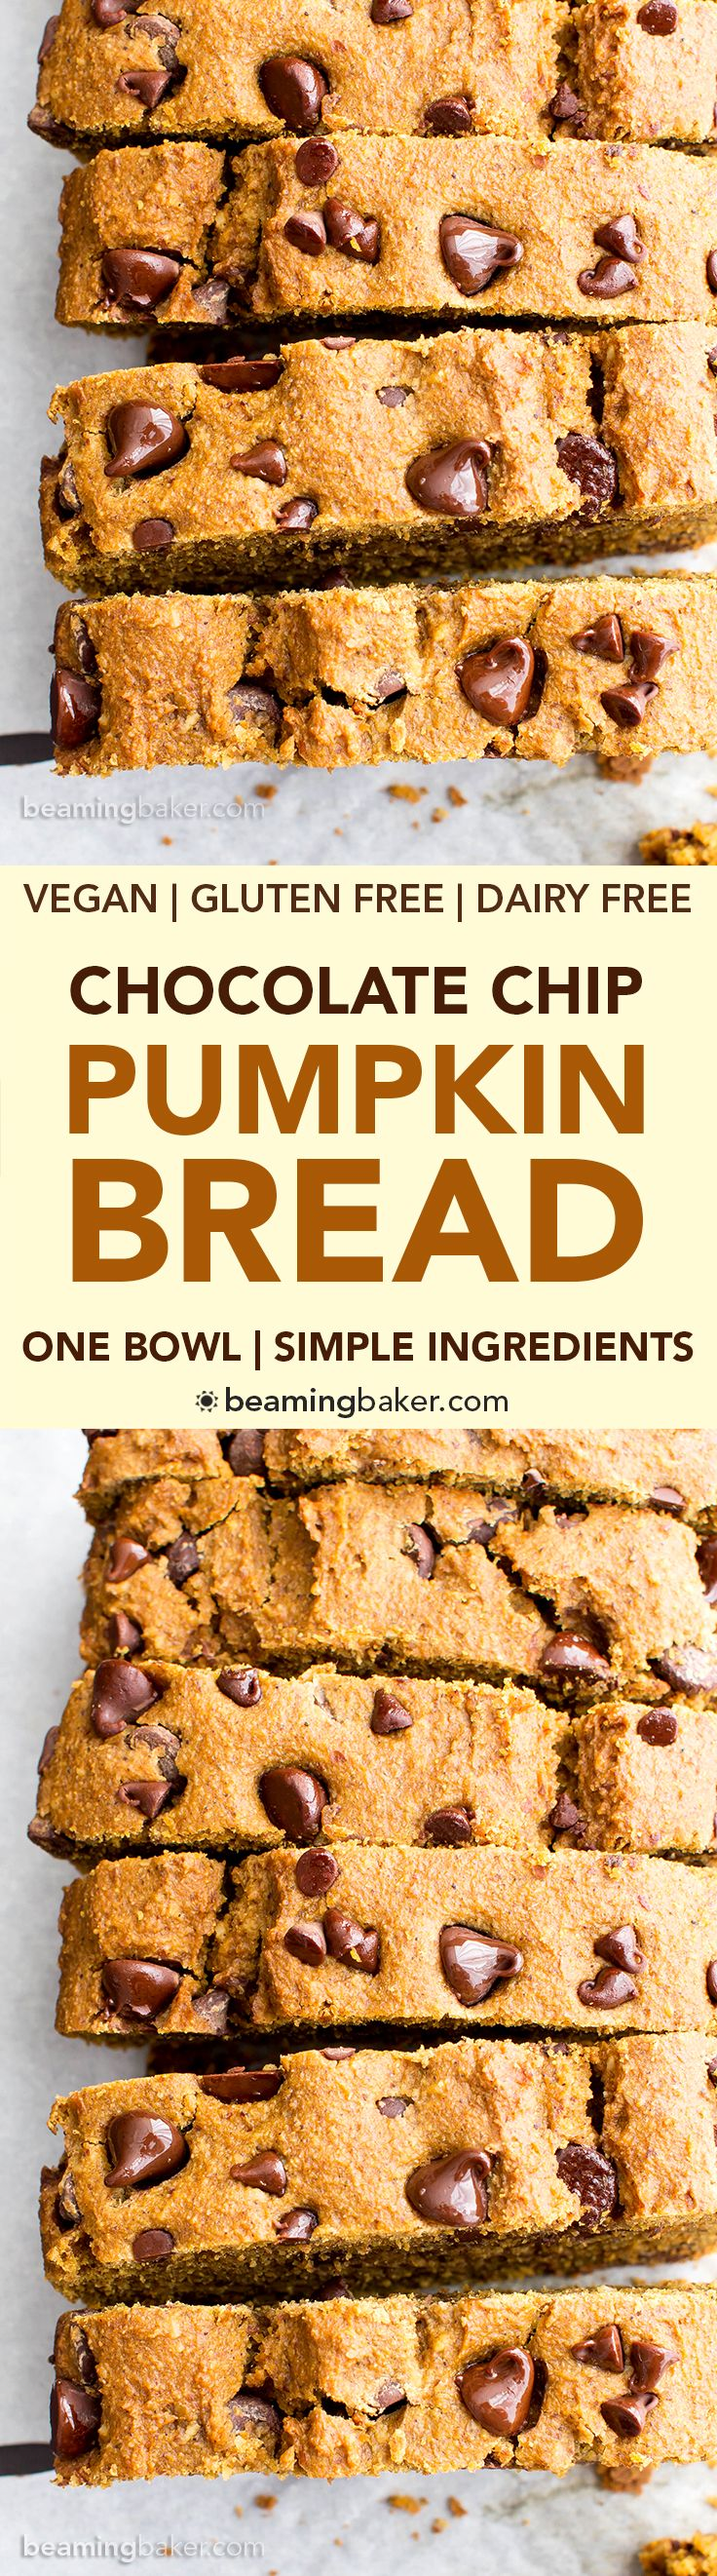 One Bowl Gluten Free Vegan Pumpkin Chocolate Chip Bread (V, GF, DF): an easy, one bowl recipe for perfectly moist pumpkin bread bursting with chocolate chips. #Vegan #GlutenFree #DairyFree | BeamingBaker.com